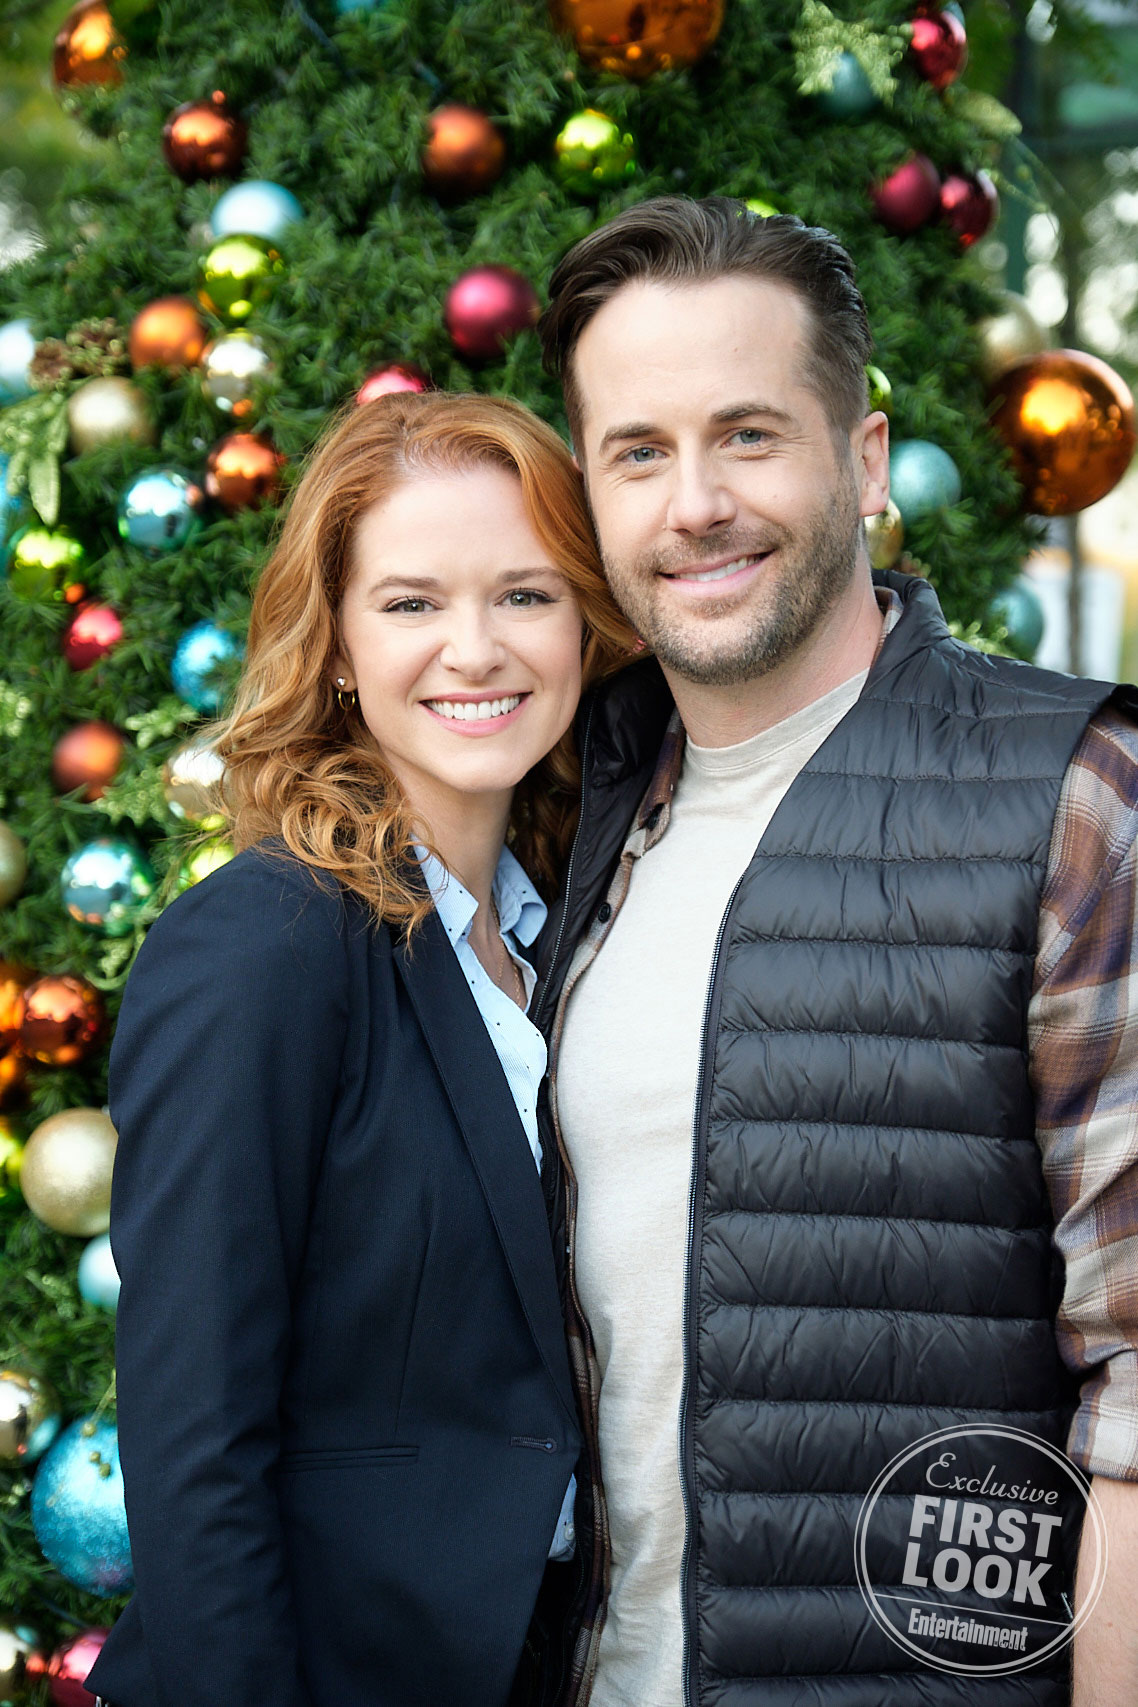 Christmas Pen Pals(Dec. 15, 8 p.m. ET/PT on Lifetime)